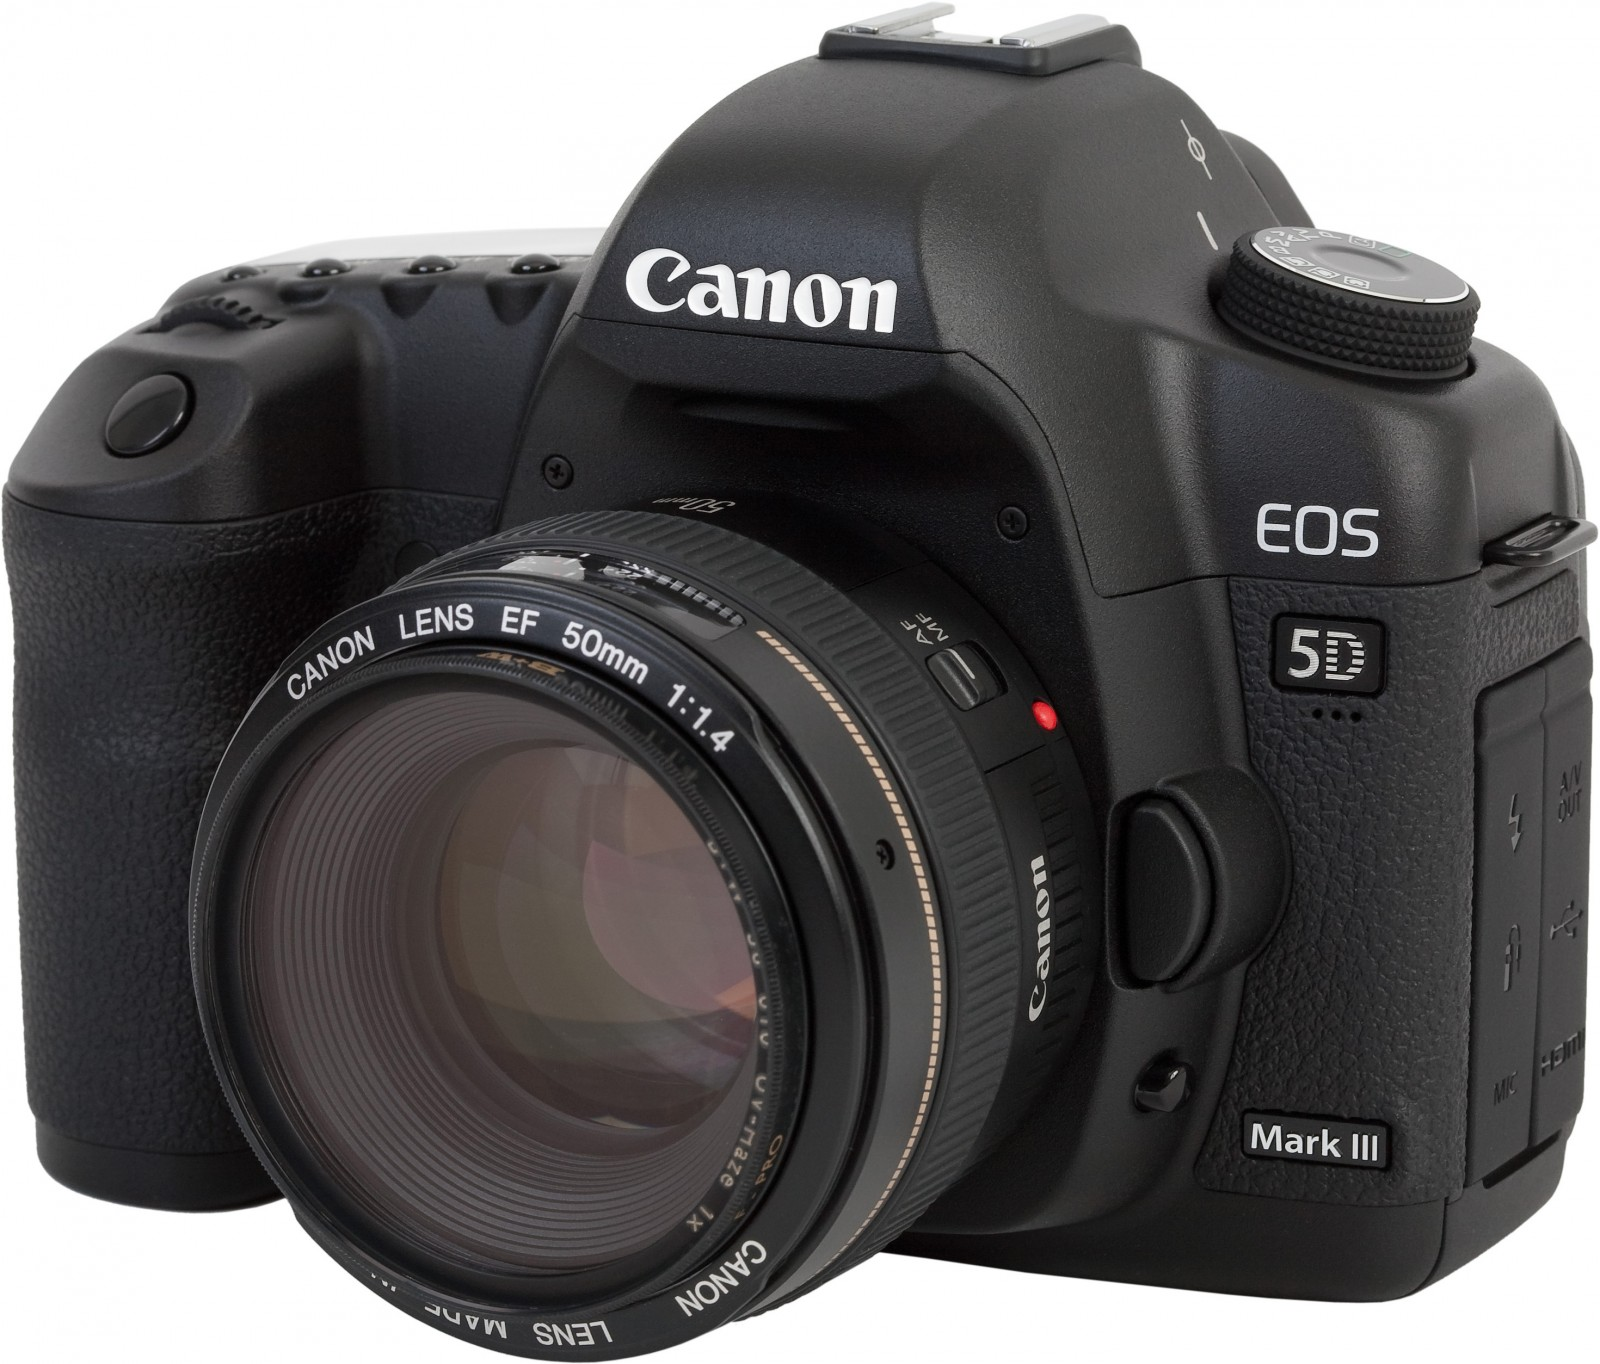 Eos 5d Mark Iii >> Canon 5d Mark Iii Mini Review And Impressions With 5d Mark Iii